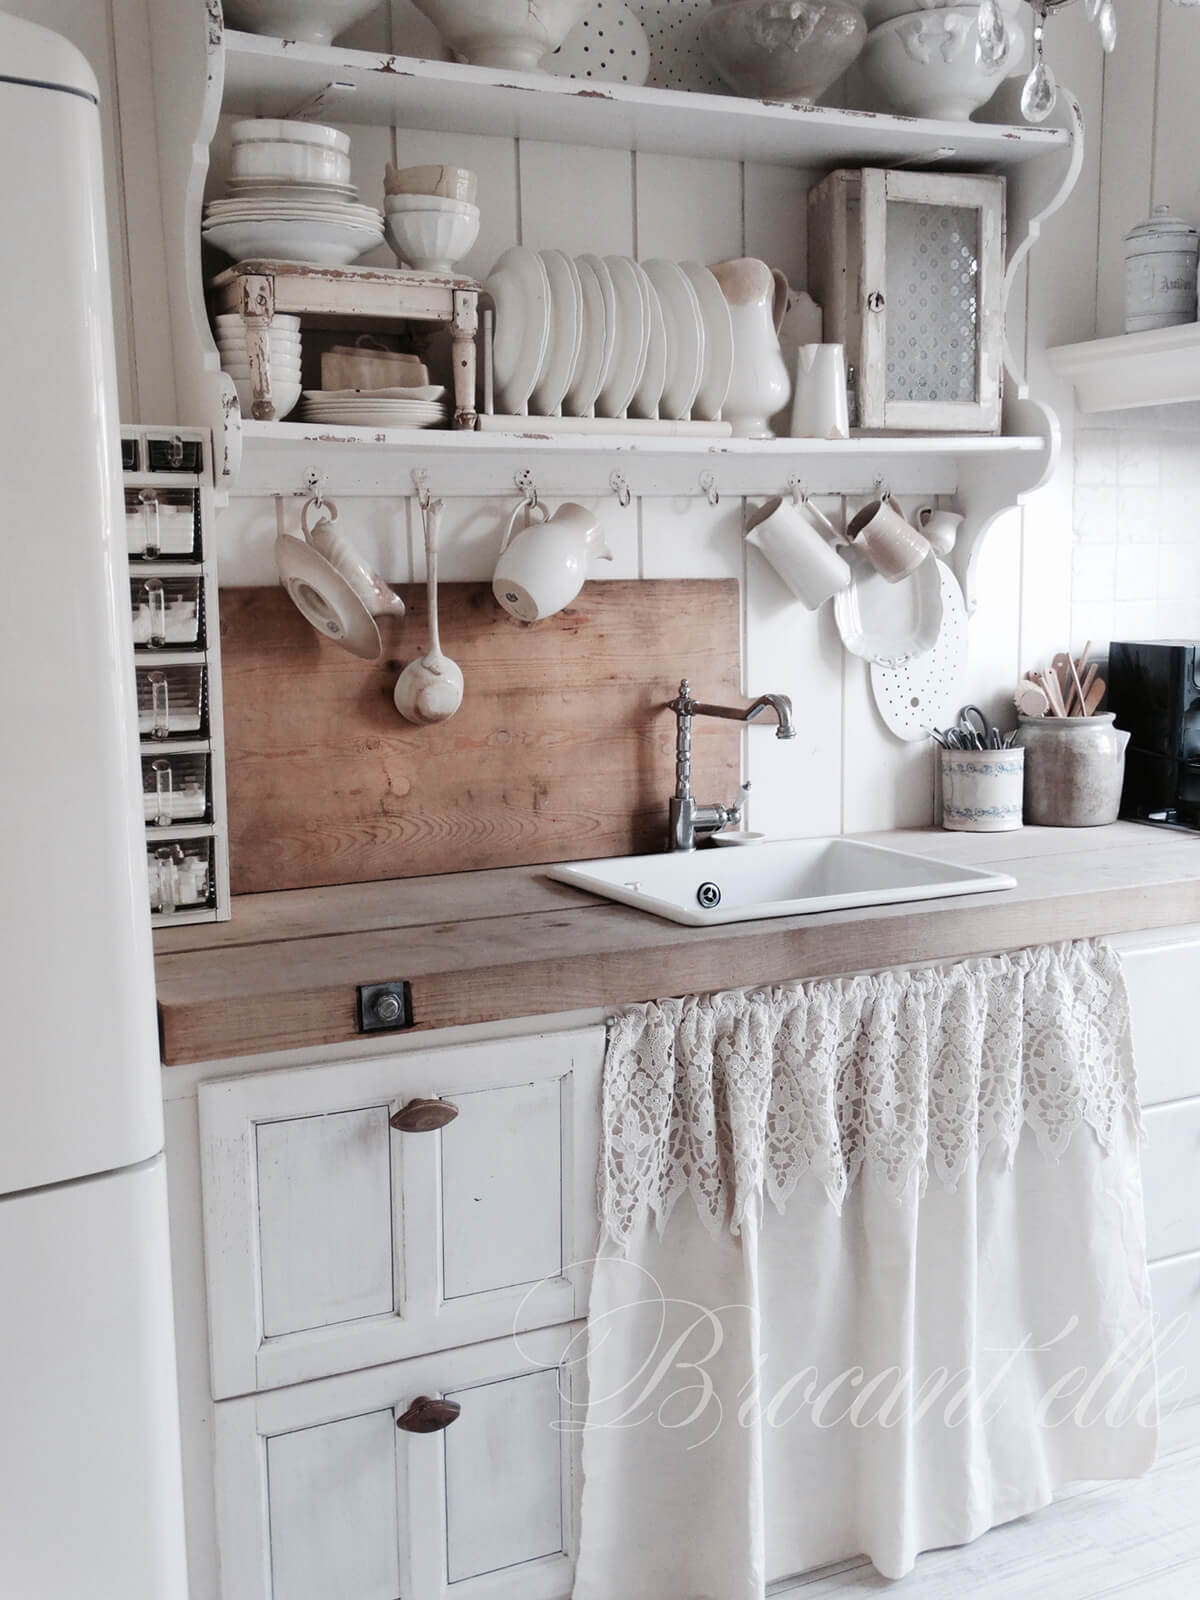 Lace Curtain Covering Shelves under the Sink